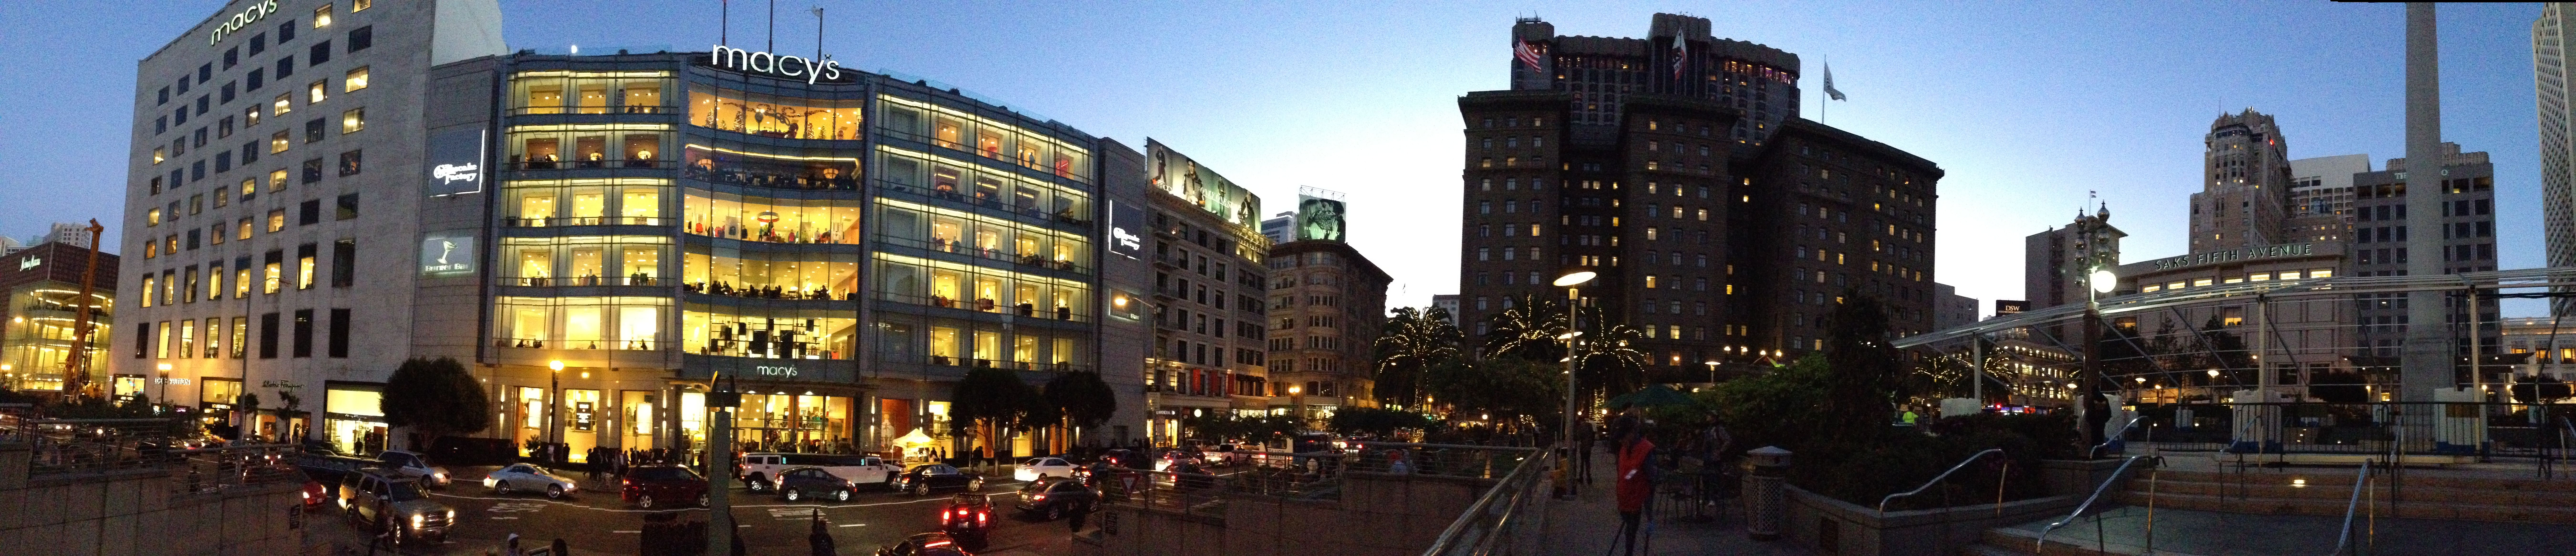 Union Square in SF (panoramic)